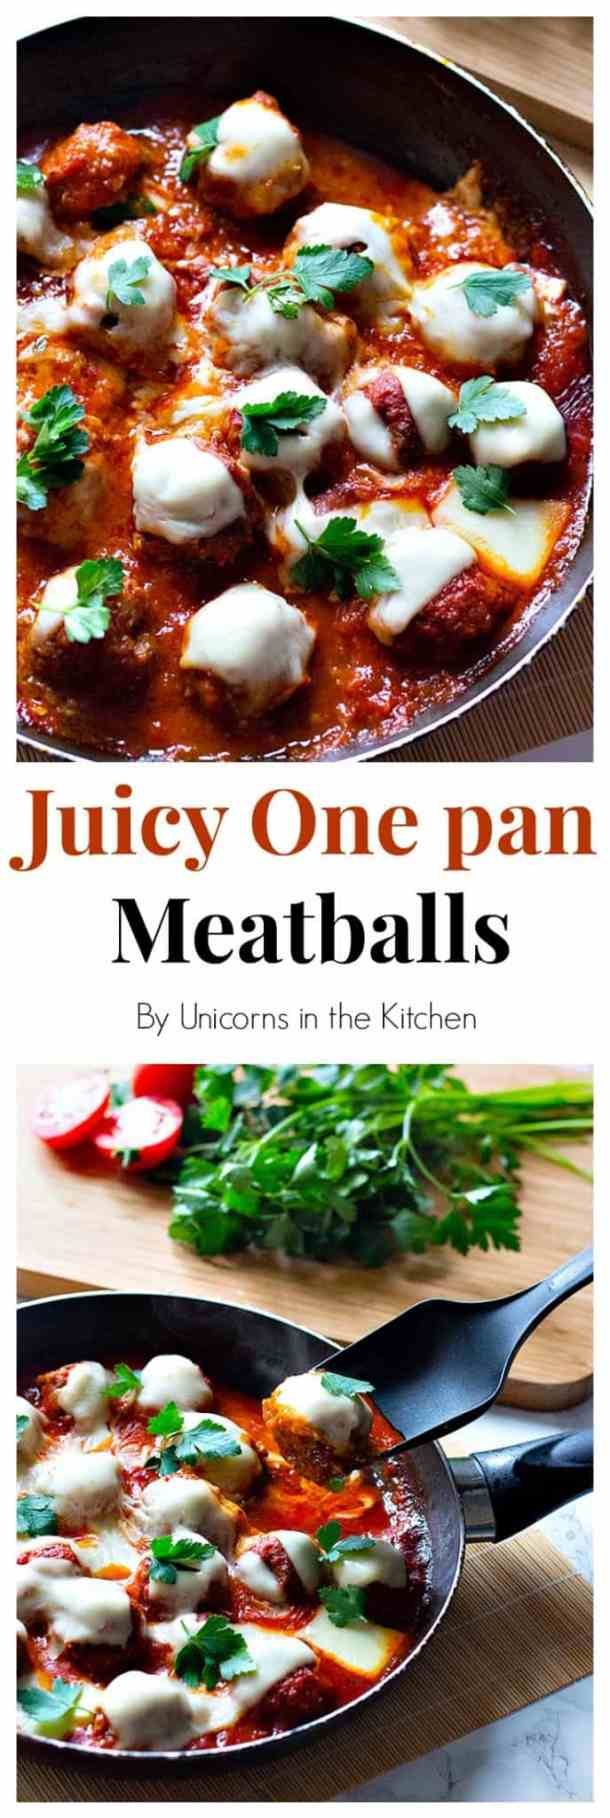 This recipe for juicy one pan meatballs is easy and has only a few ingredients. It's perfect for weeknights and can be served with rice, bread, pasta, or roasted potatoes!